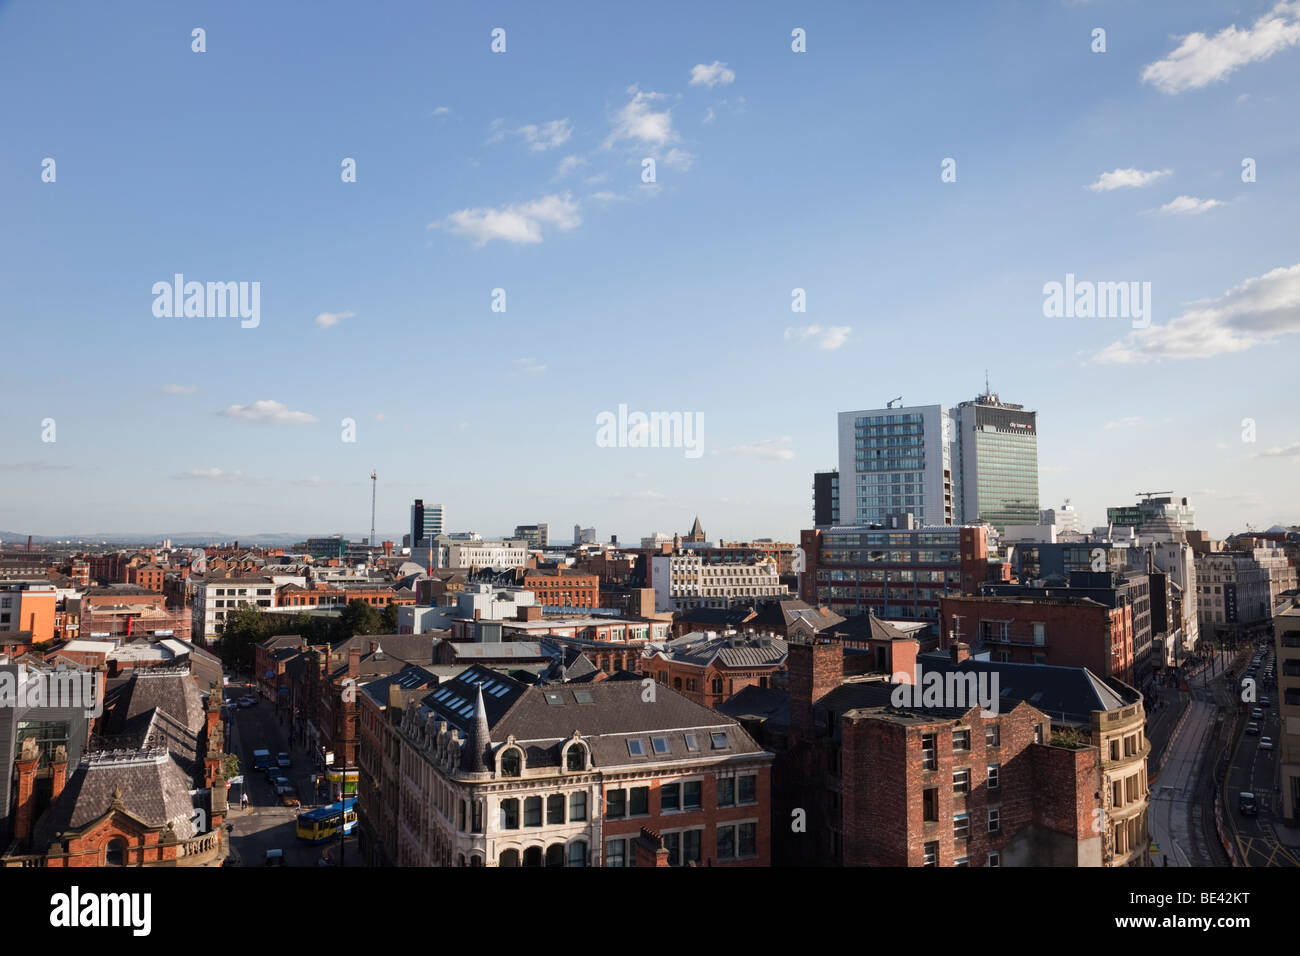 Elevated view of the city skyline near the centre of Manchester, England, UK, Britain. - Stock Image